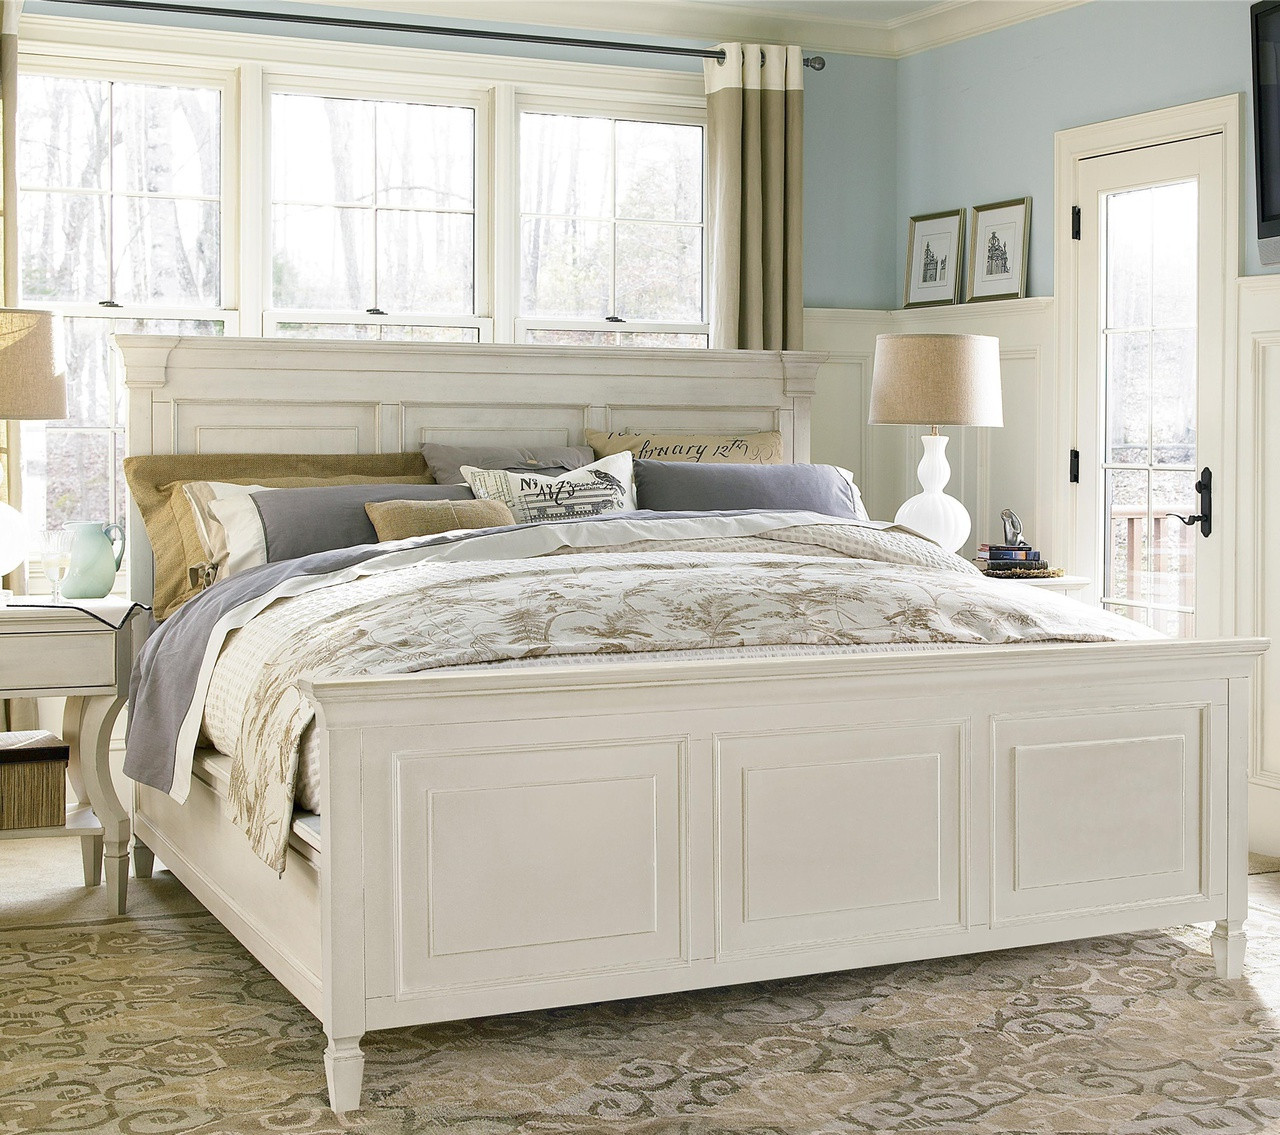 Country-chic White King Panel Bed Frame Zin Home